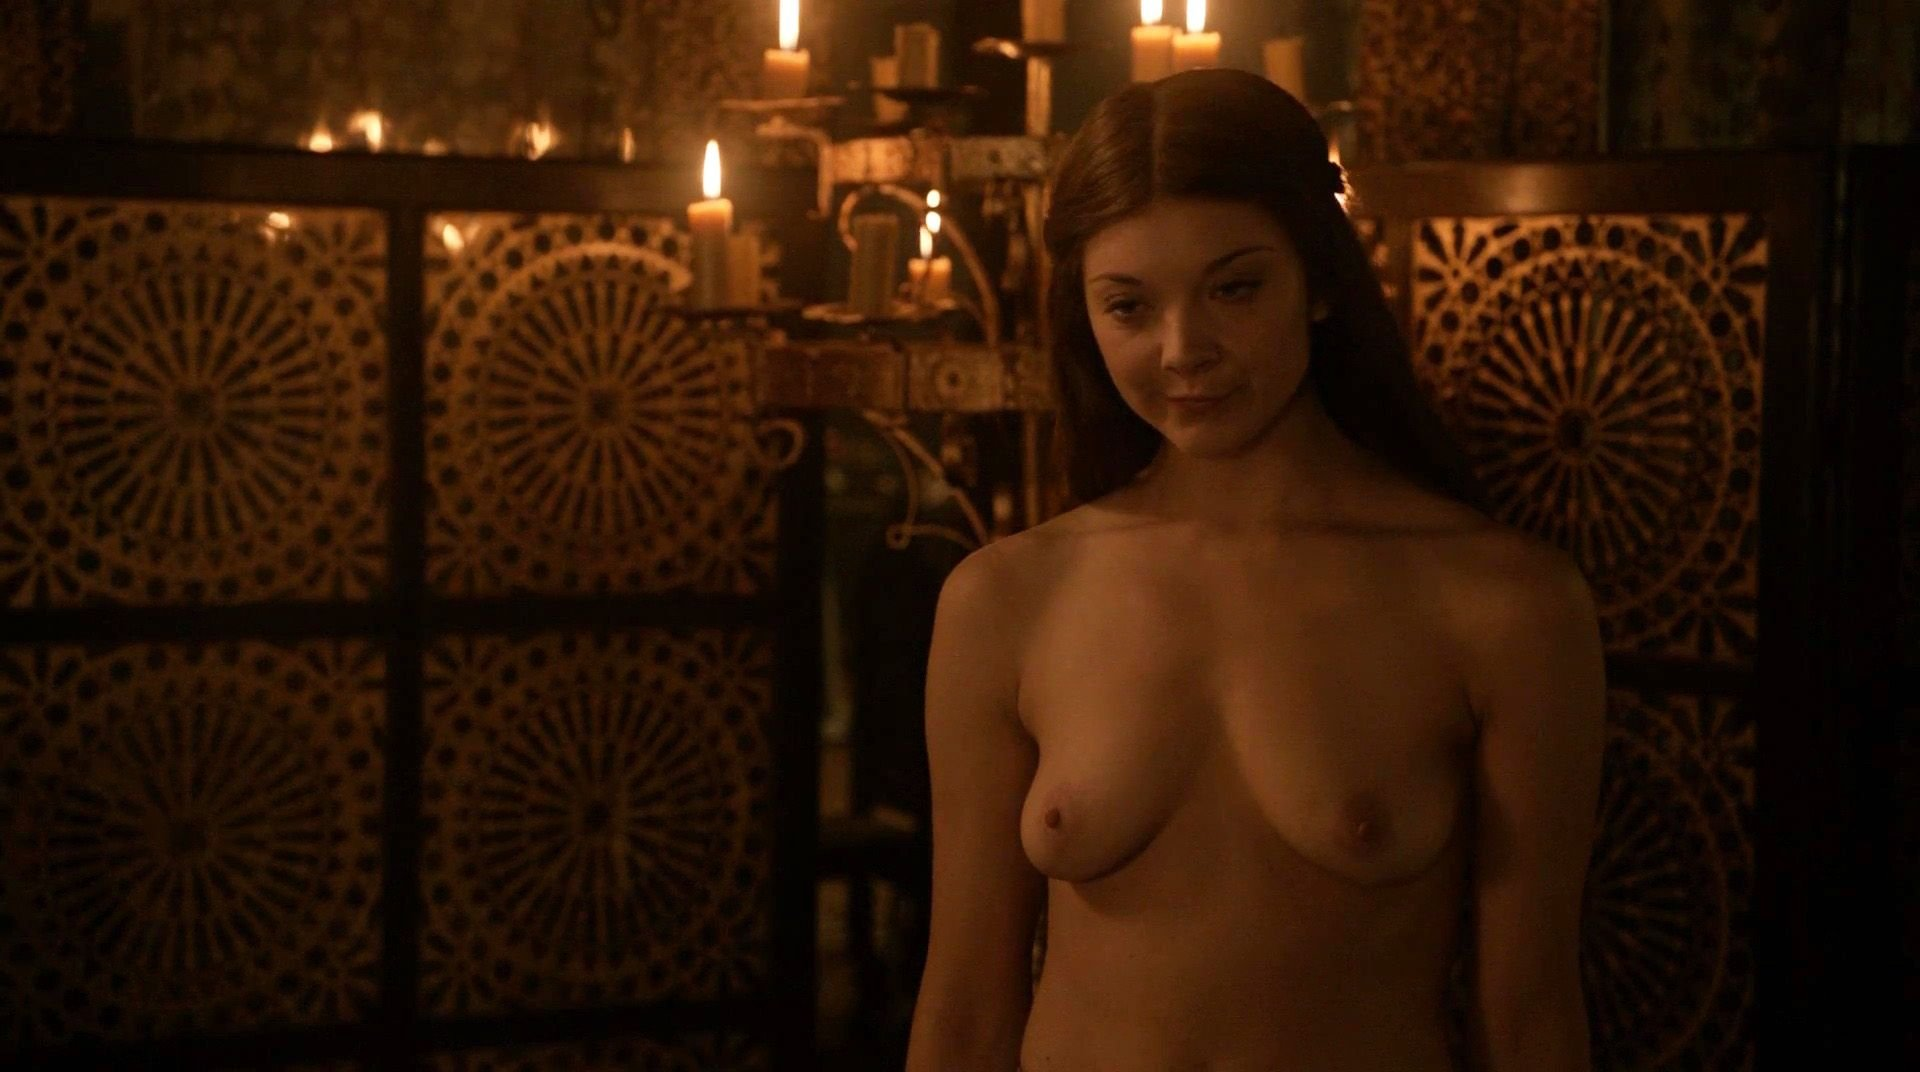 Game of thrones natalie dormer nude